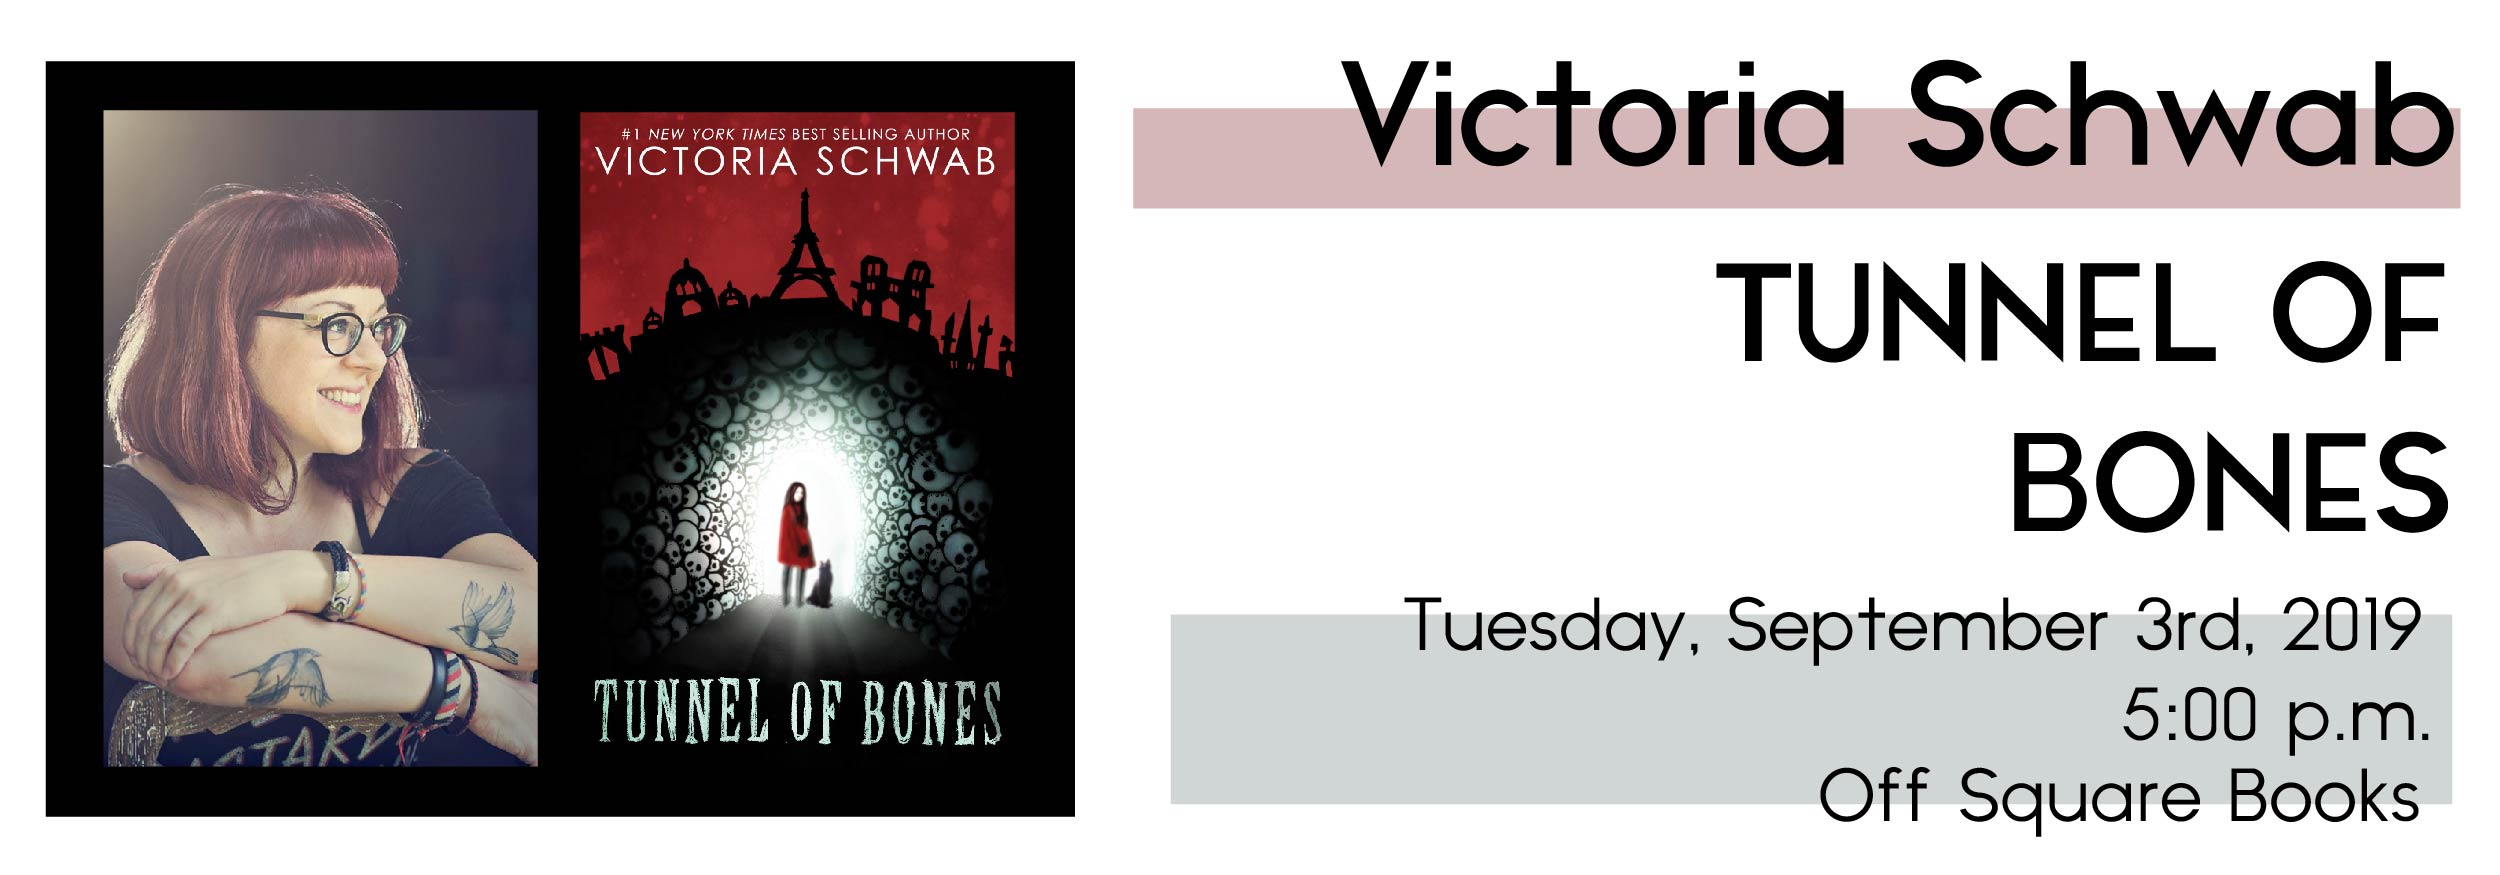 Victoria Schwab with TUNNEL OF BONES | SQUARE BOOKS